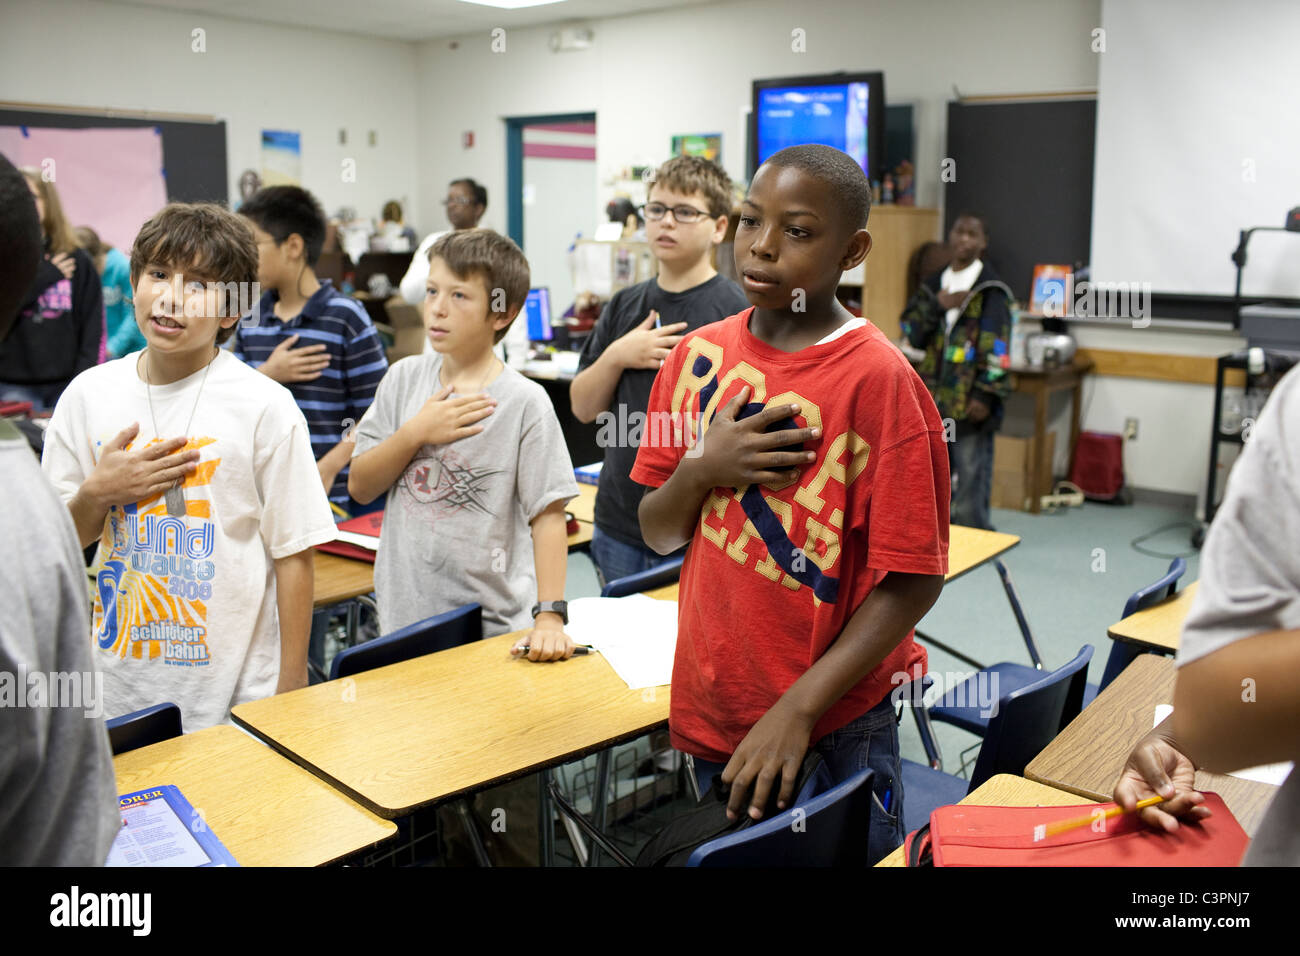 Middle School junior high students stand at beginning of class with hand on heart to recite the pledge of allegiance - Stock Image